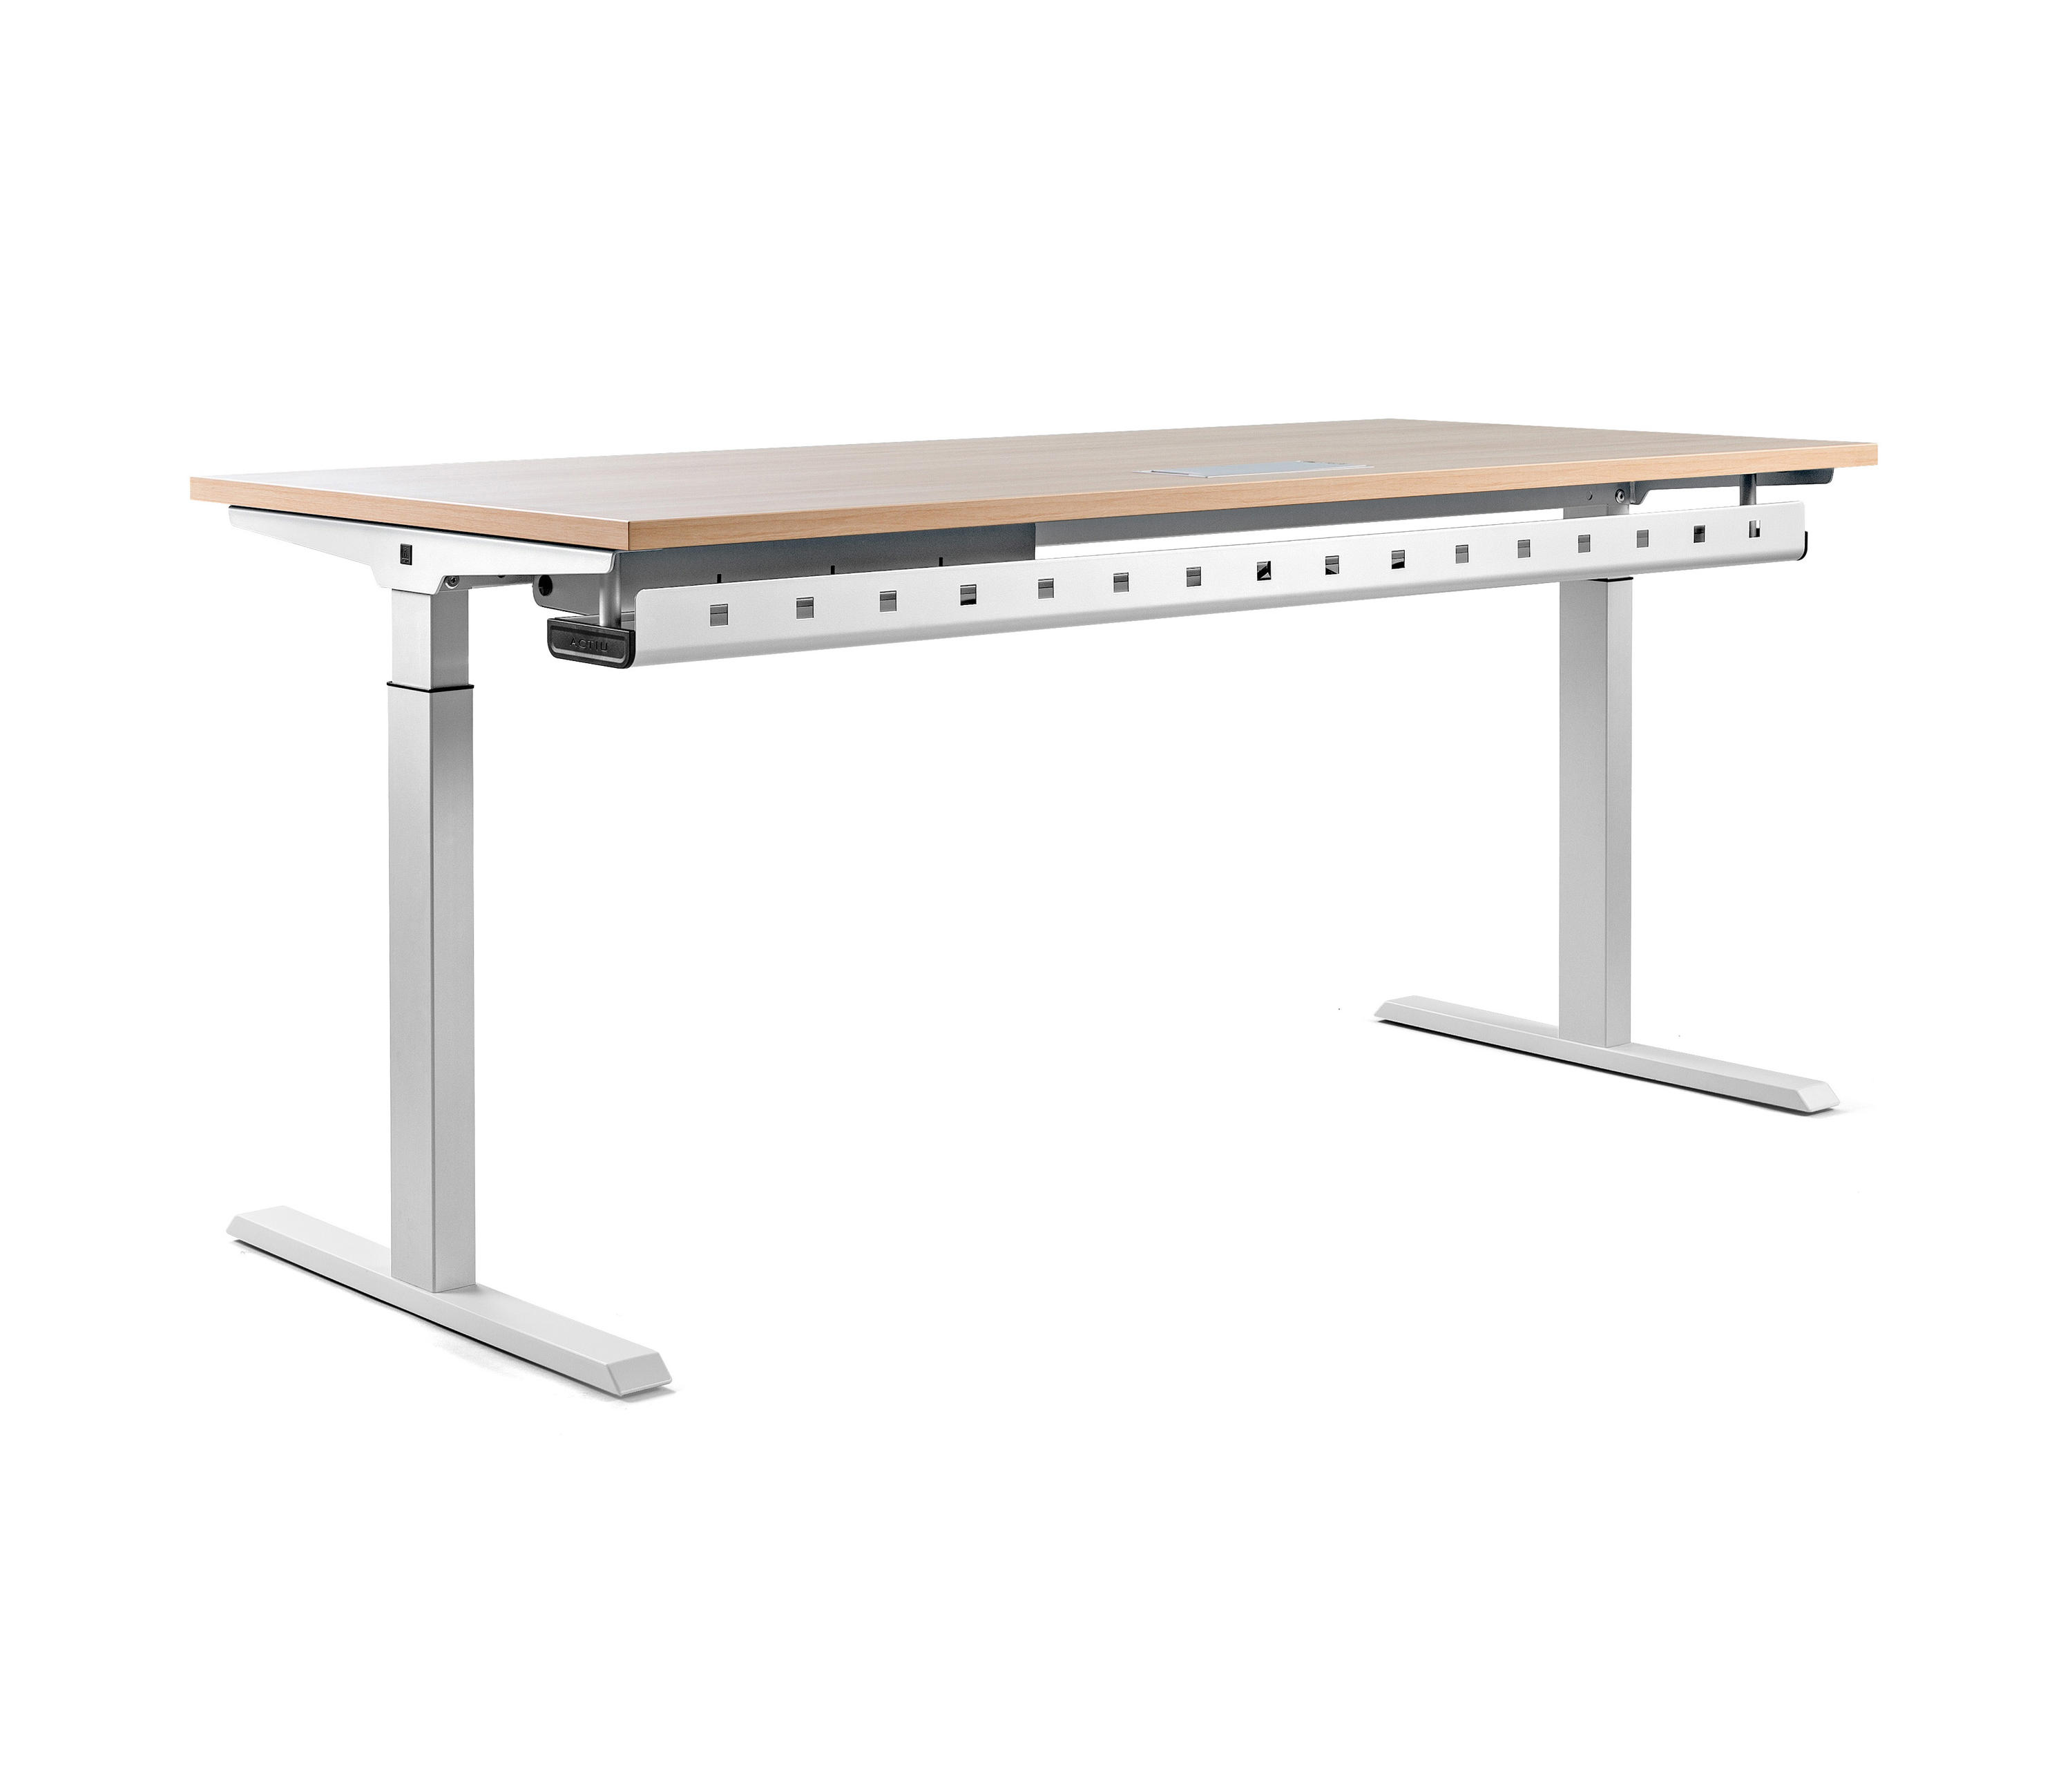 MOBILITY - Seminar tables from actiu   Architonic